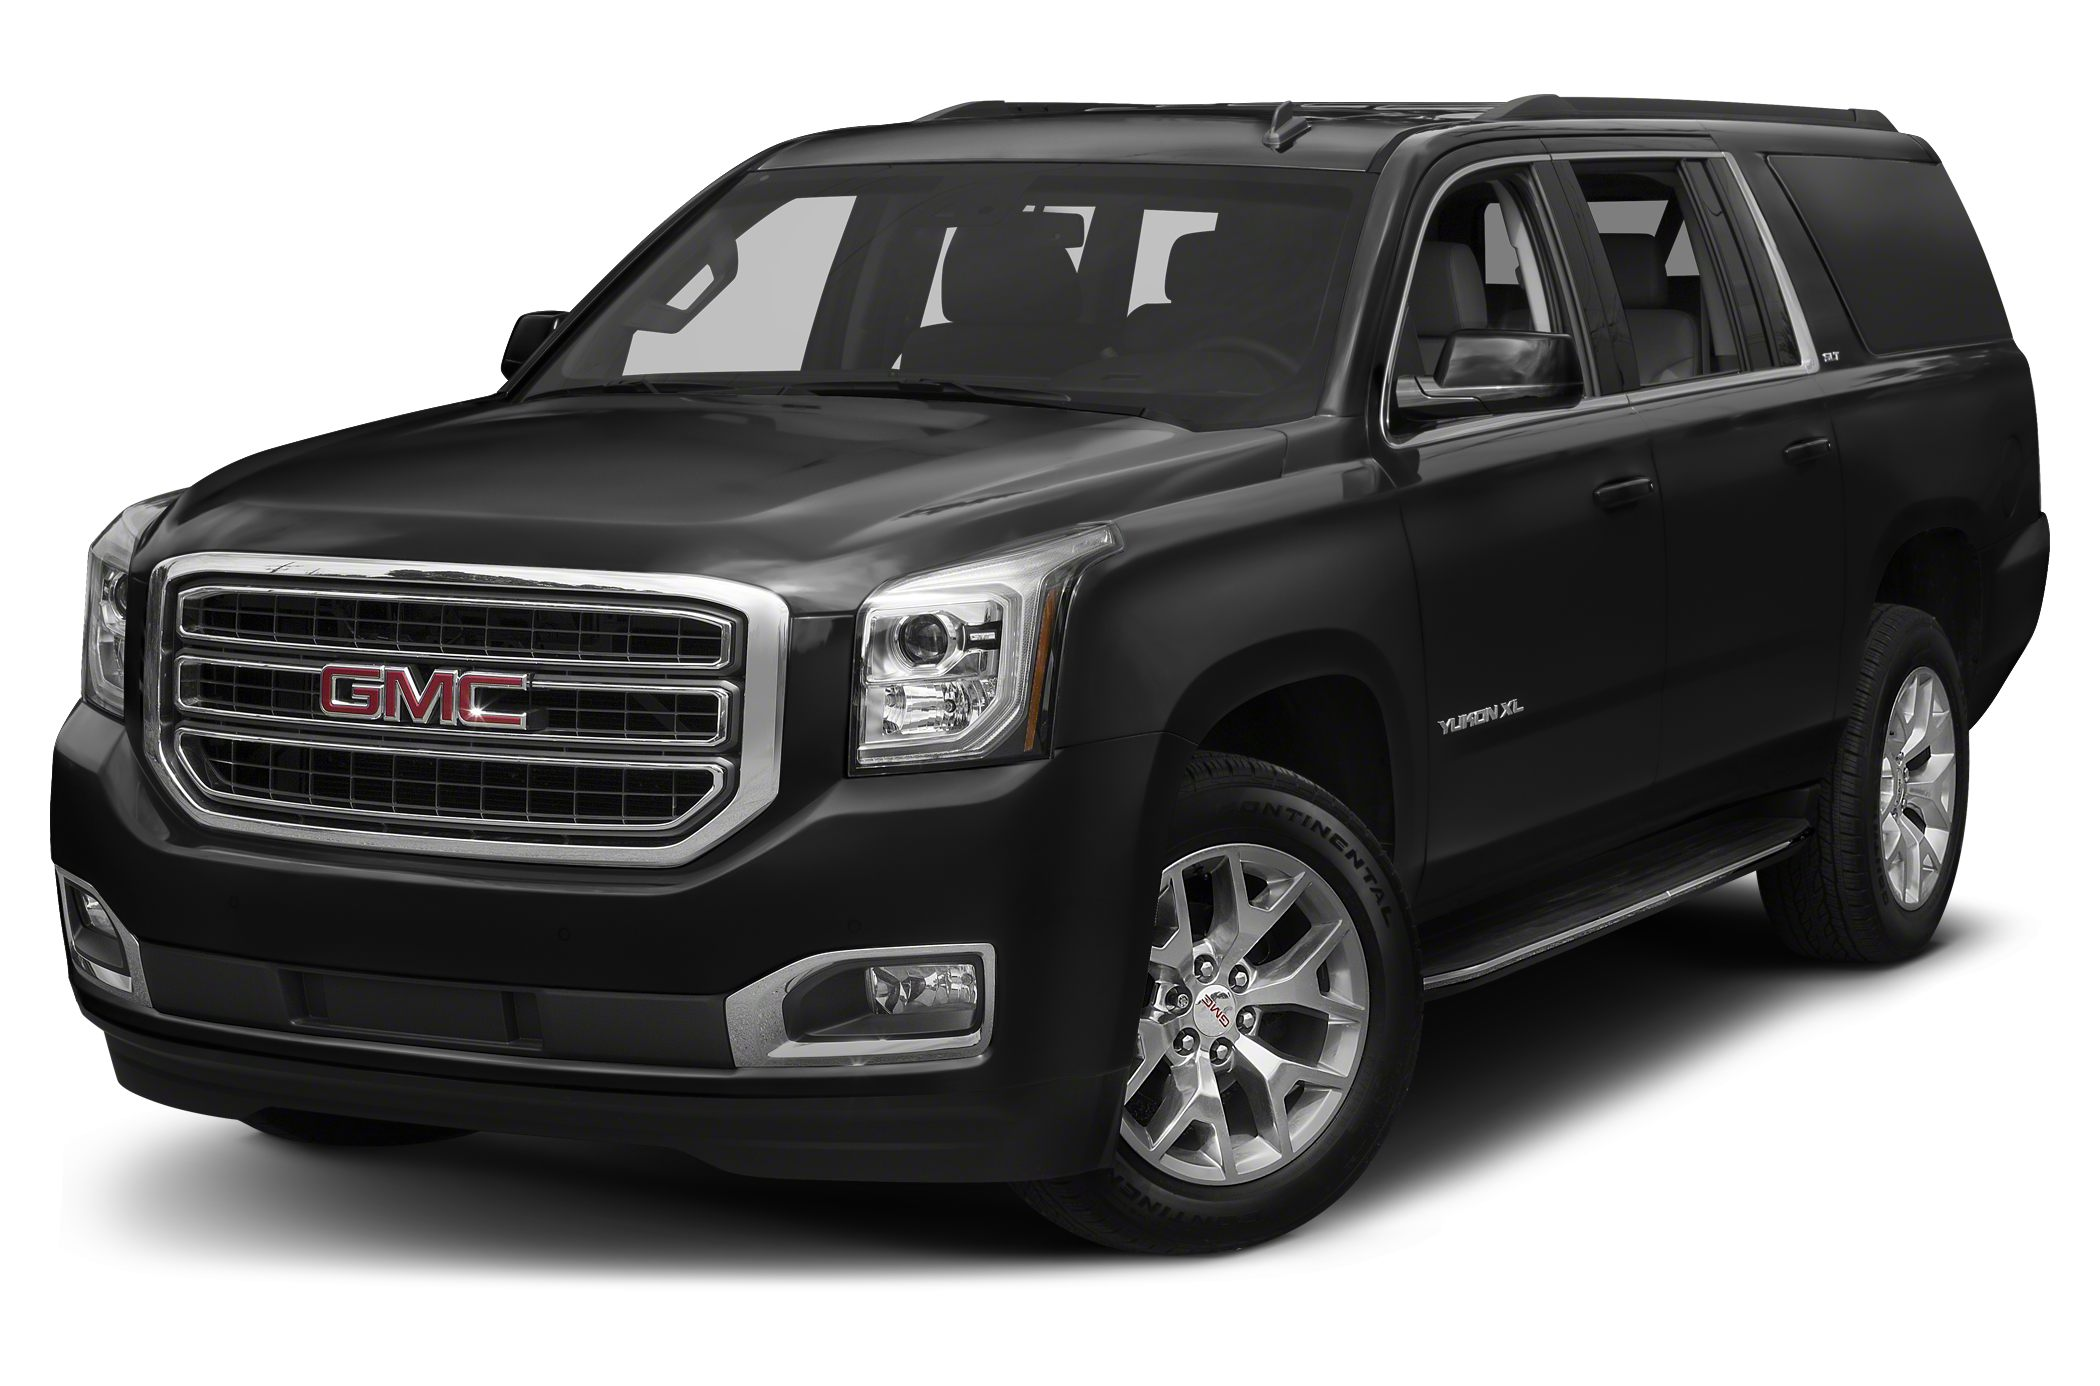 2015 GMC Yukon XL 1500 SLE SUV for sale in Casa Grande for $48,783 with 0 miles